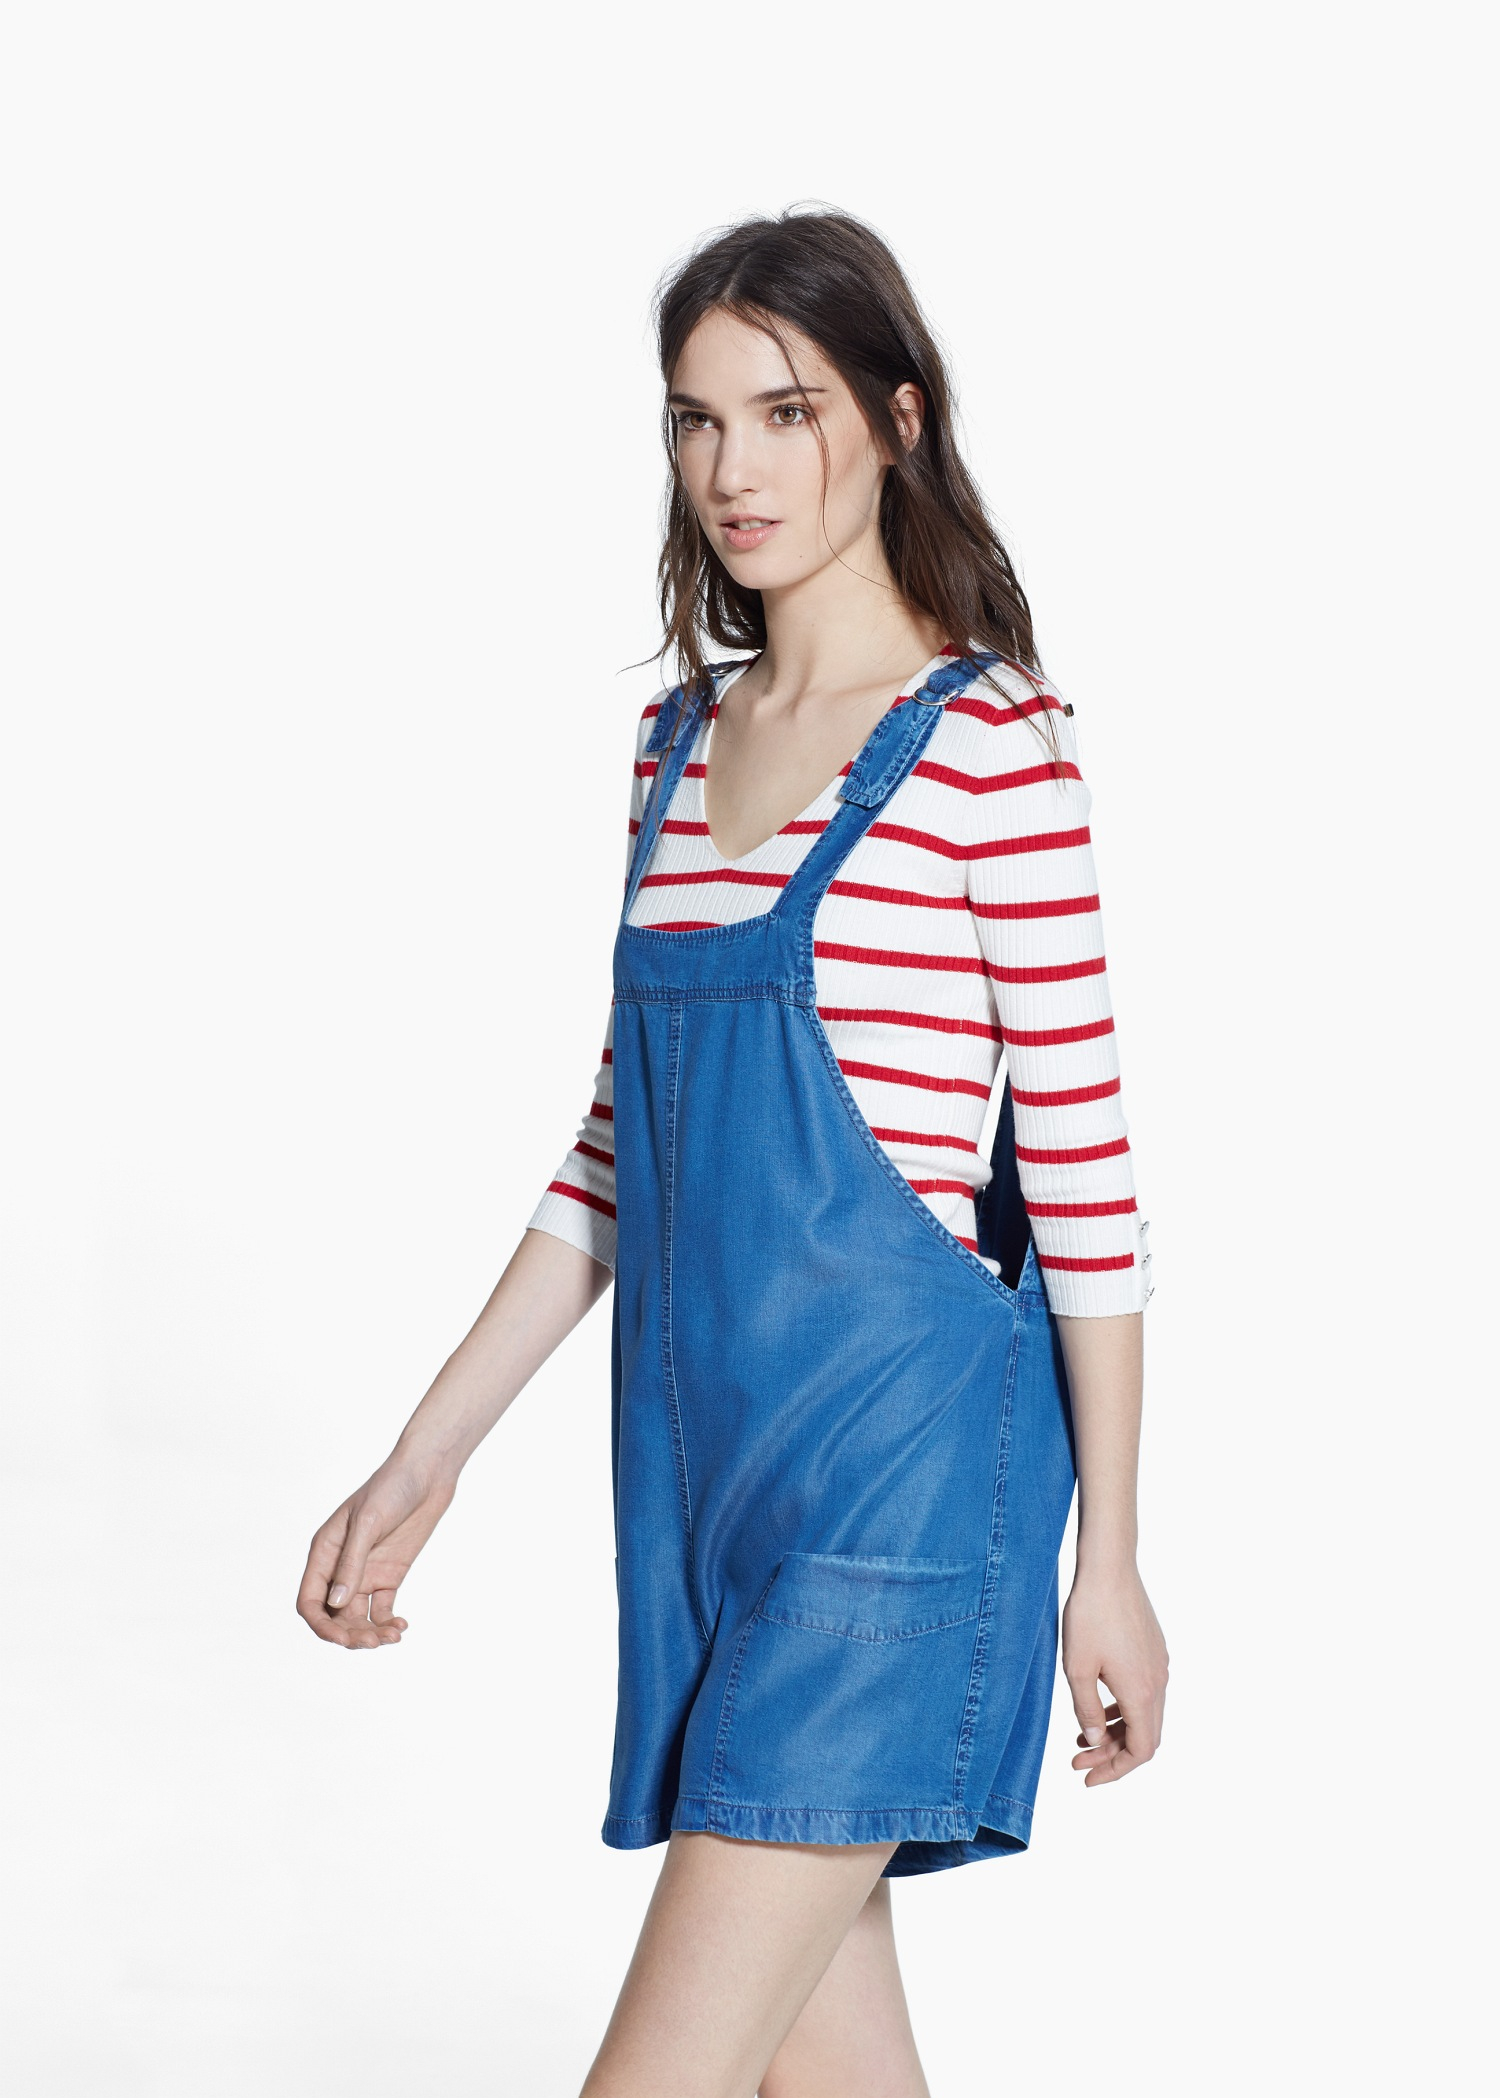 Lyst - Mango Soft Short Dungarees in Blue